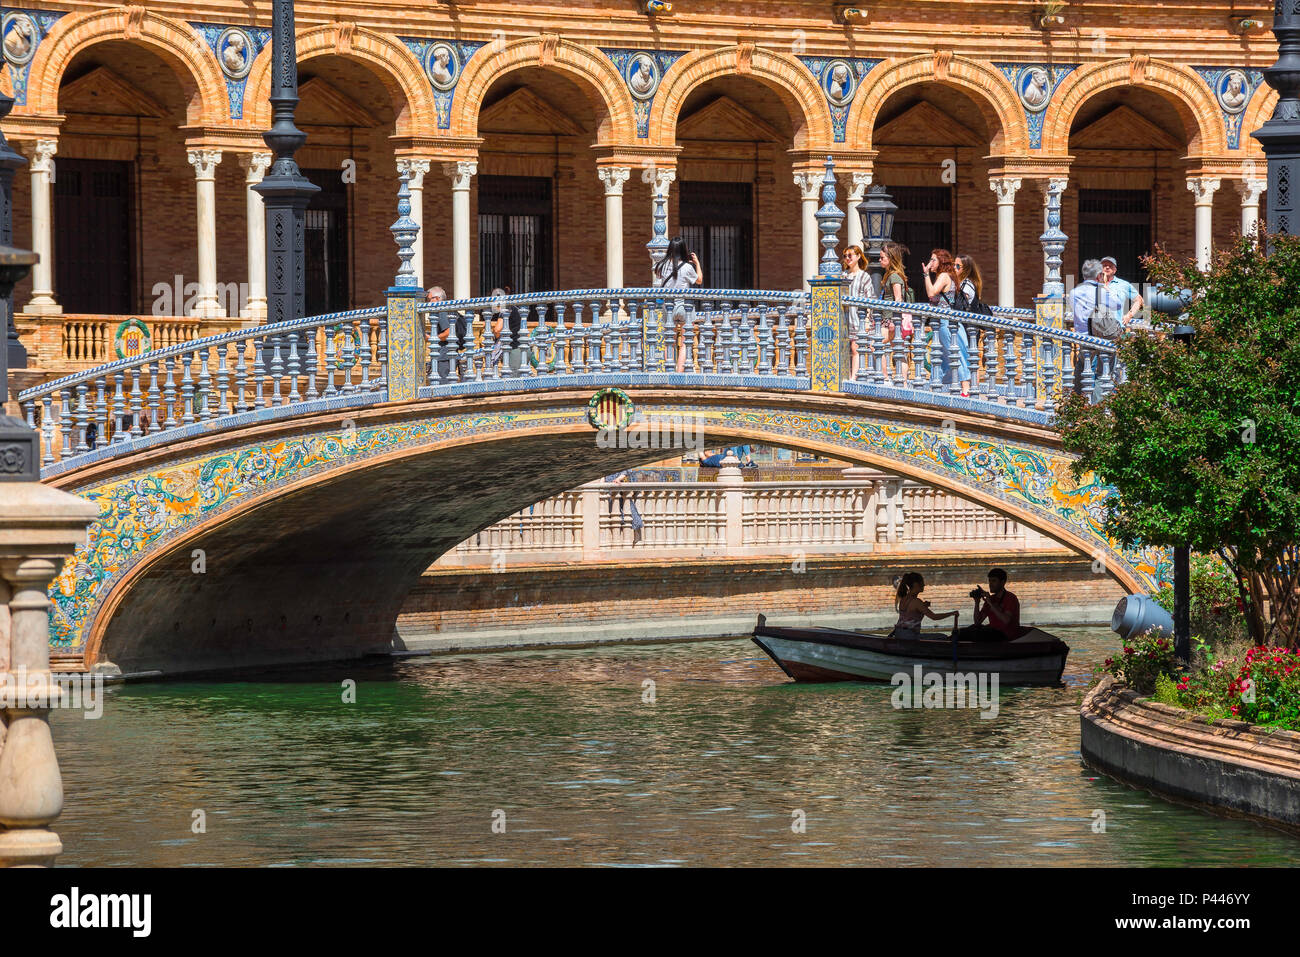 Plaza de Espana Seville, view of a bridge decorated with colorful azulejo tiles spanning a lake in the Plaza de Espana, Sevilla, Andalucia, Spain. - Stock Image